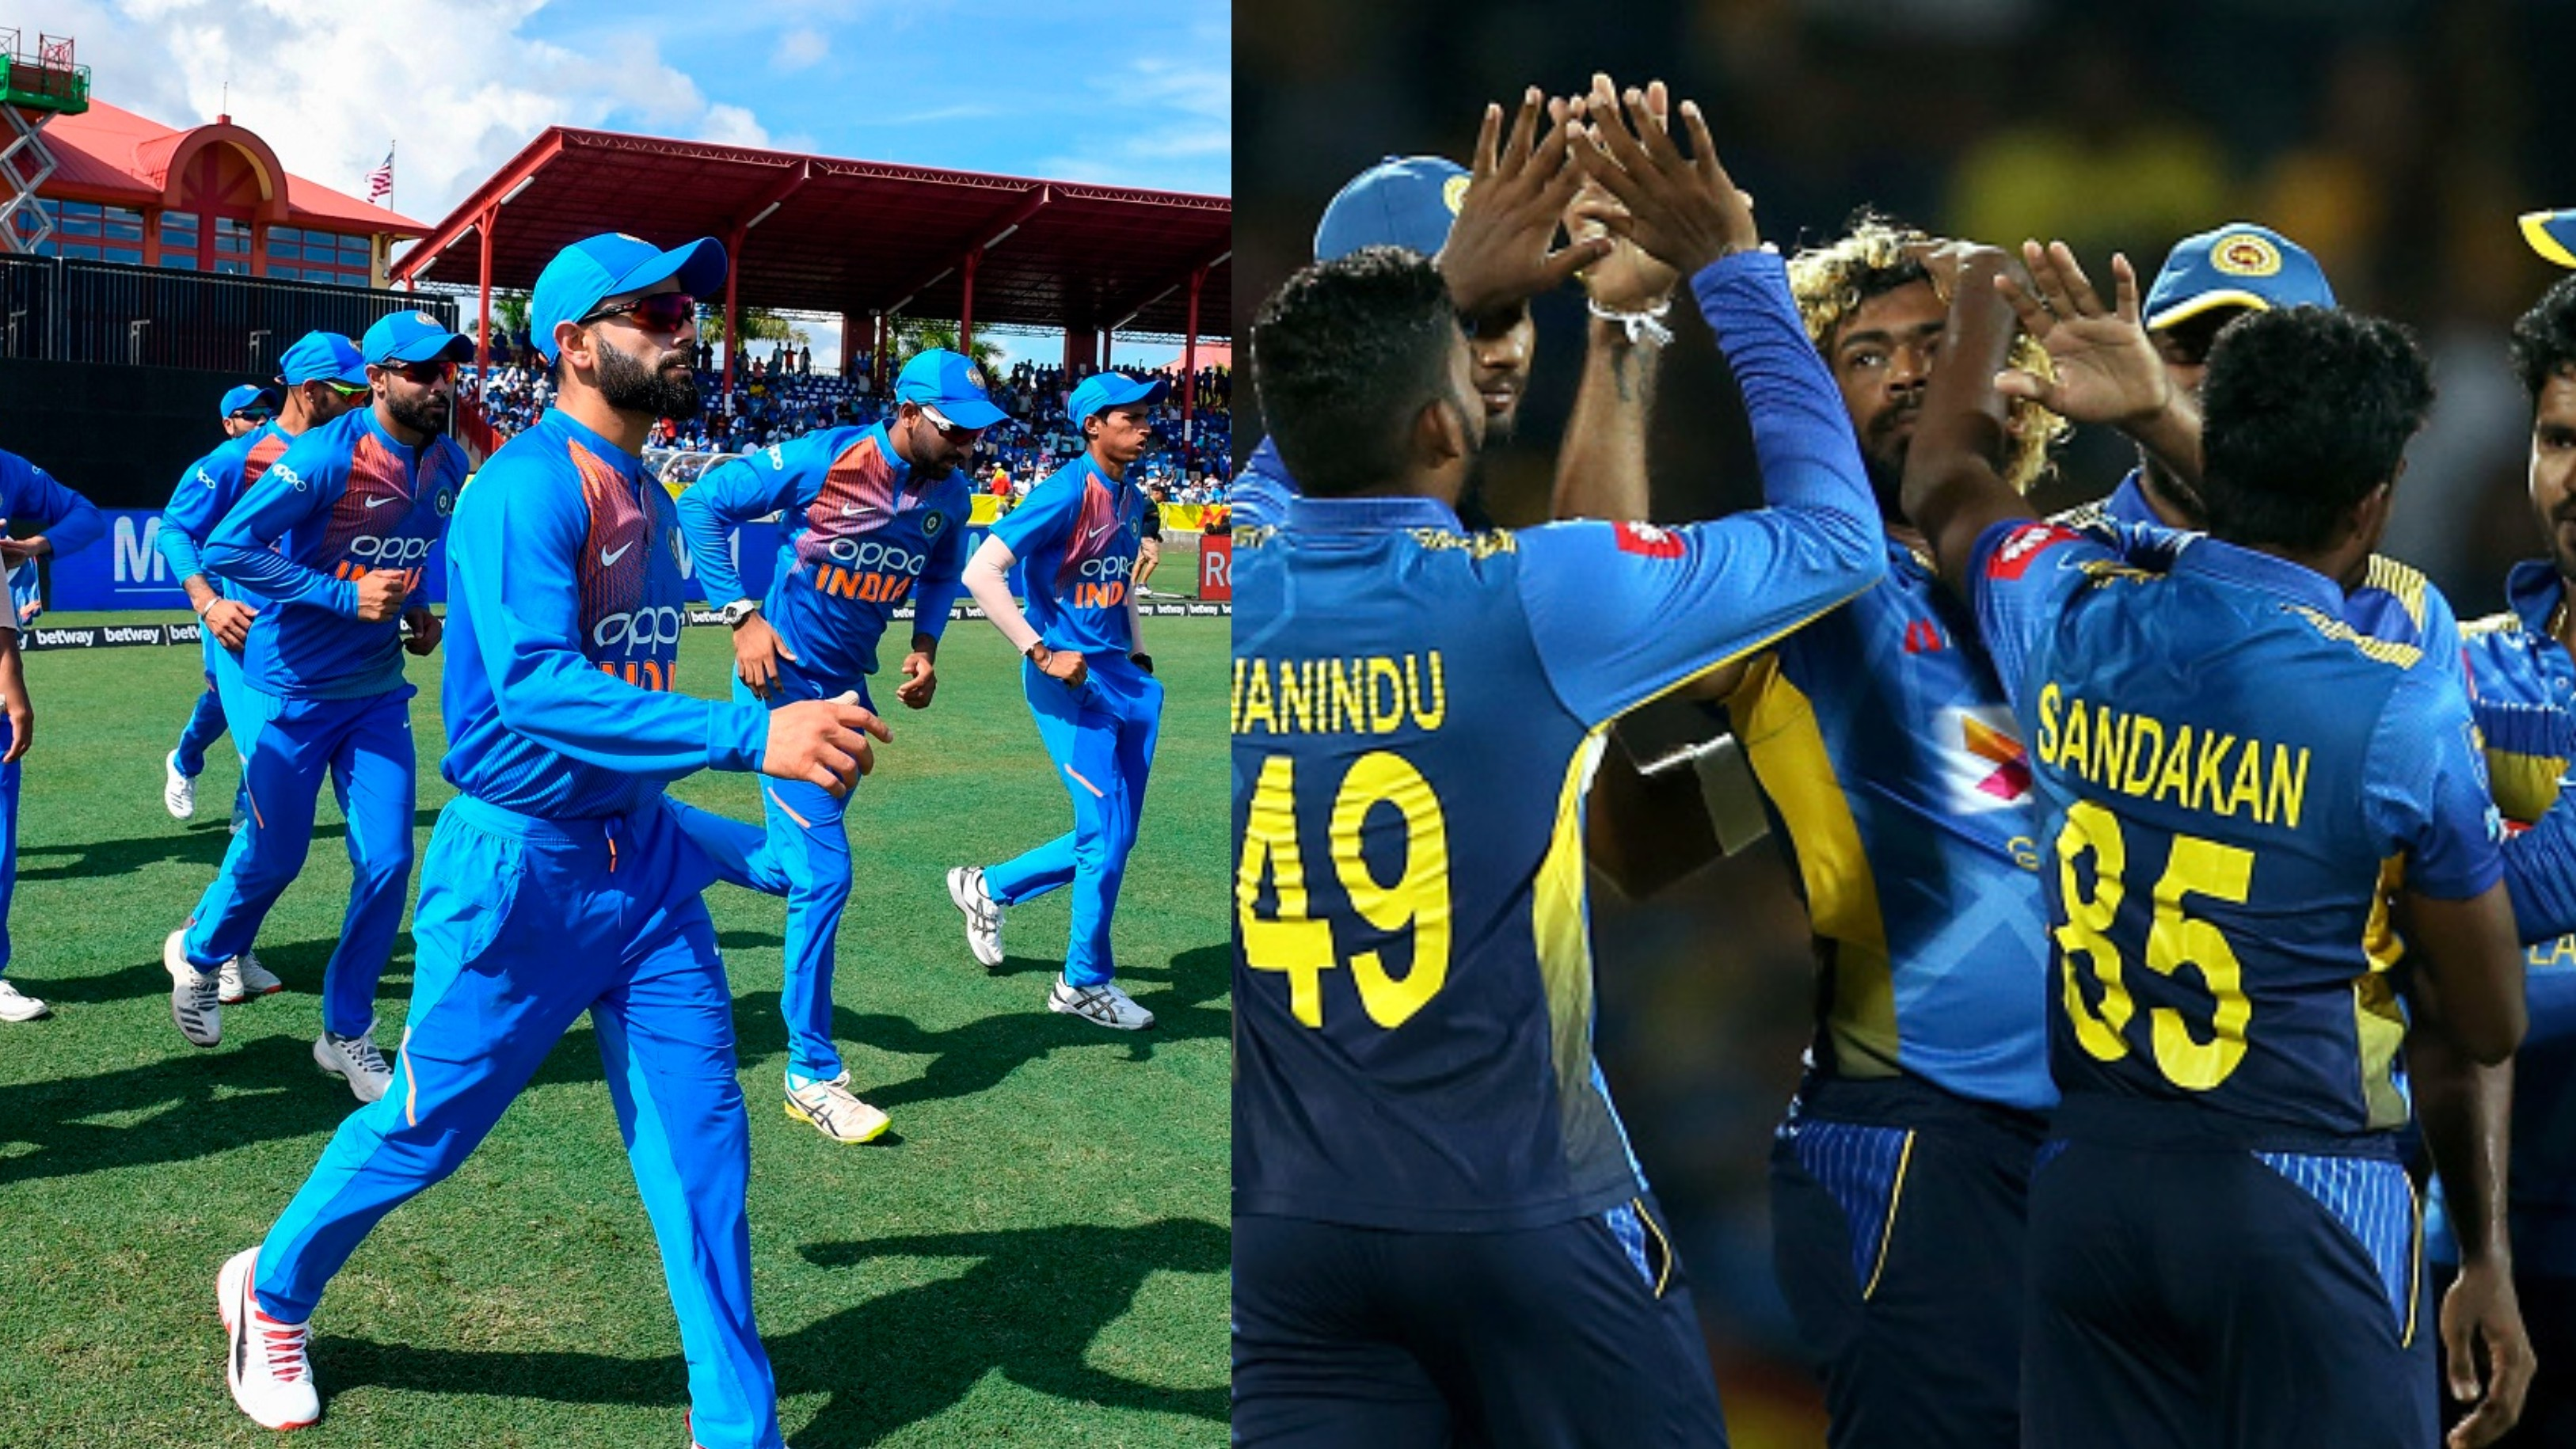 India likely to host Sri Lanka for T20I series at home next year: Reports